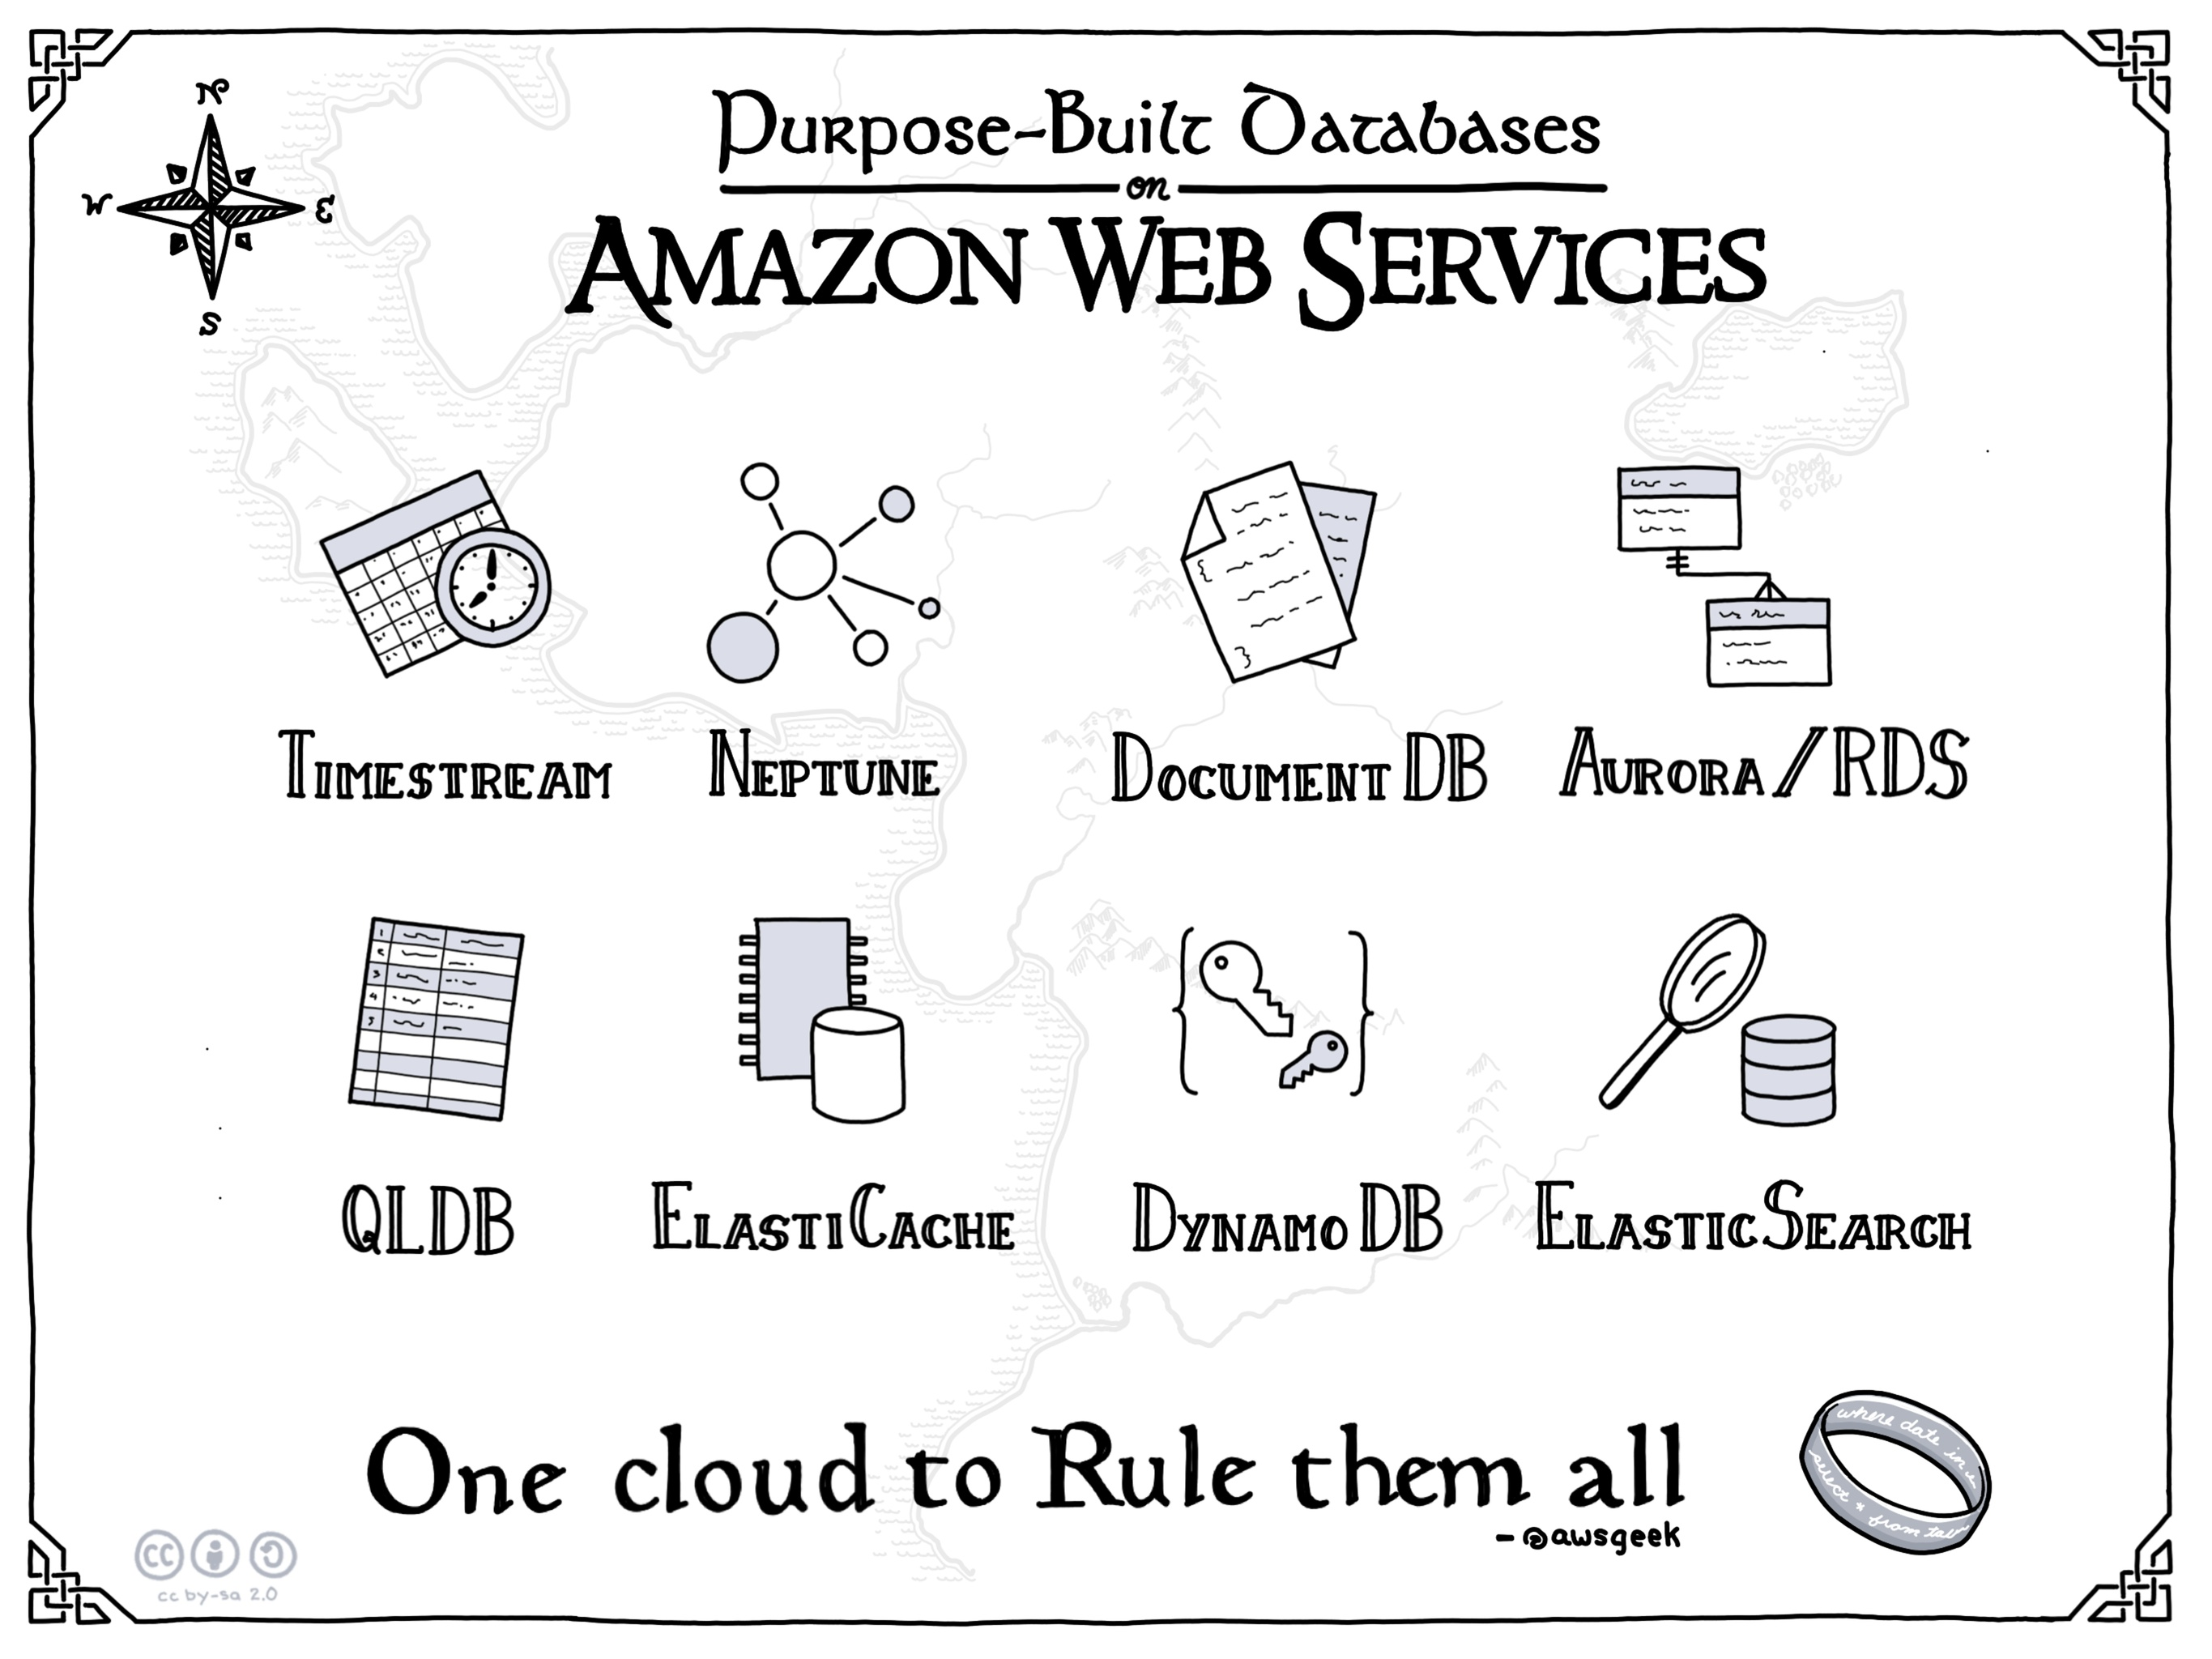 AWS-Purpose-Built-Databases.jpg